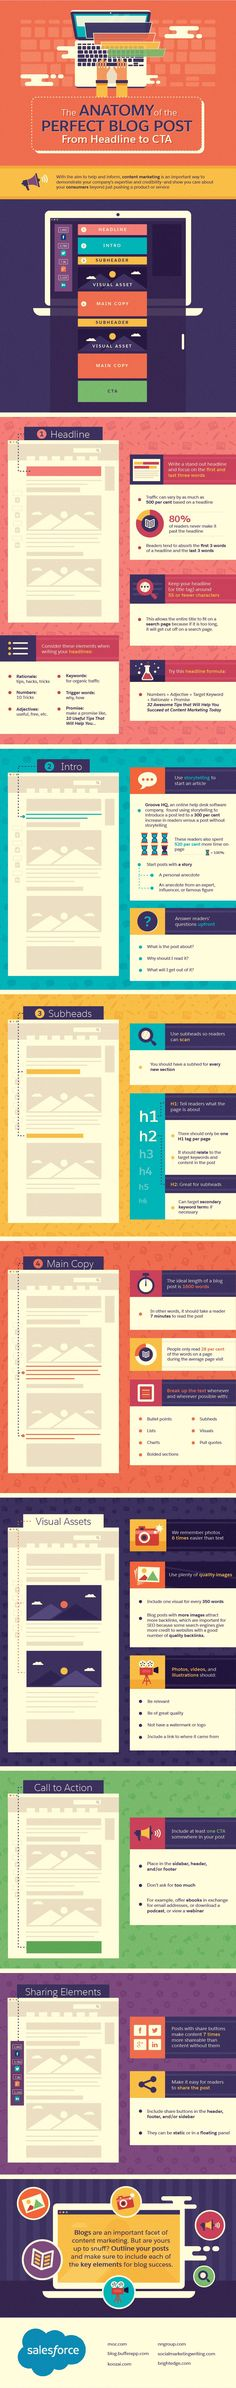 How to Write a Perfect Blog Post [INFOGRAPHIC] - @socialmedia2day